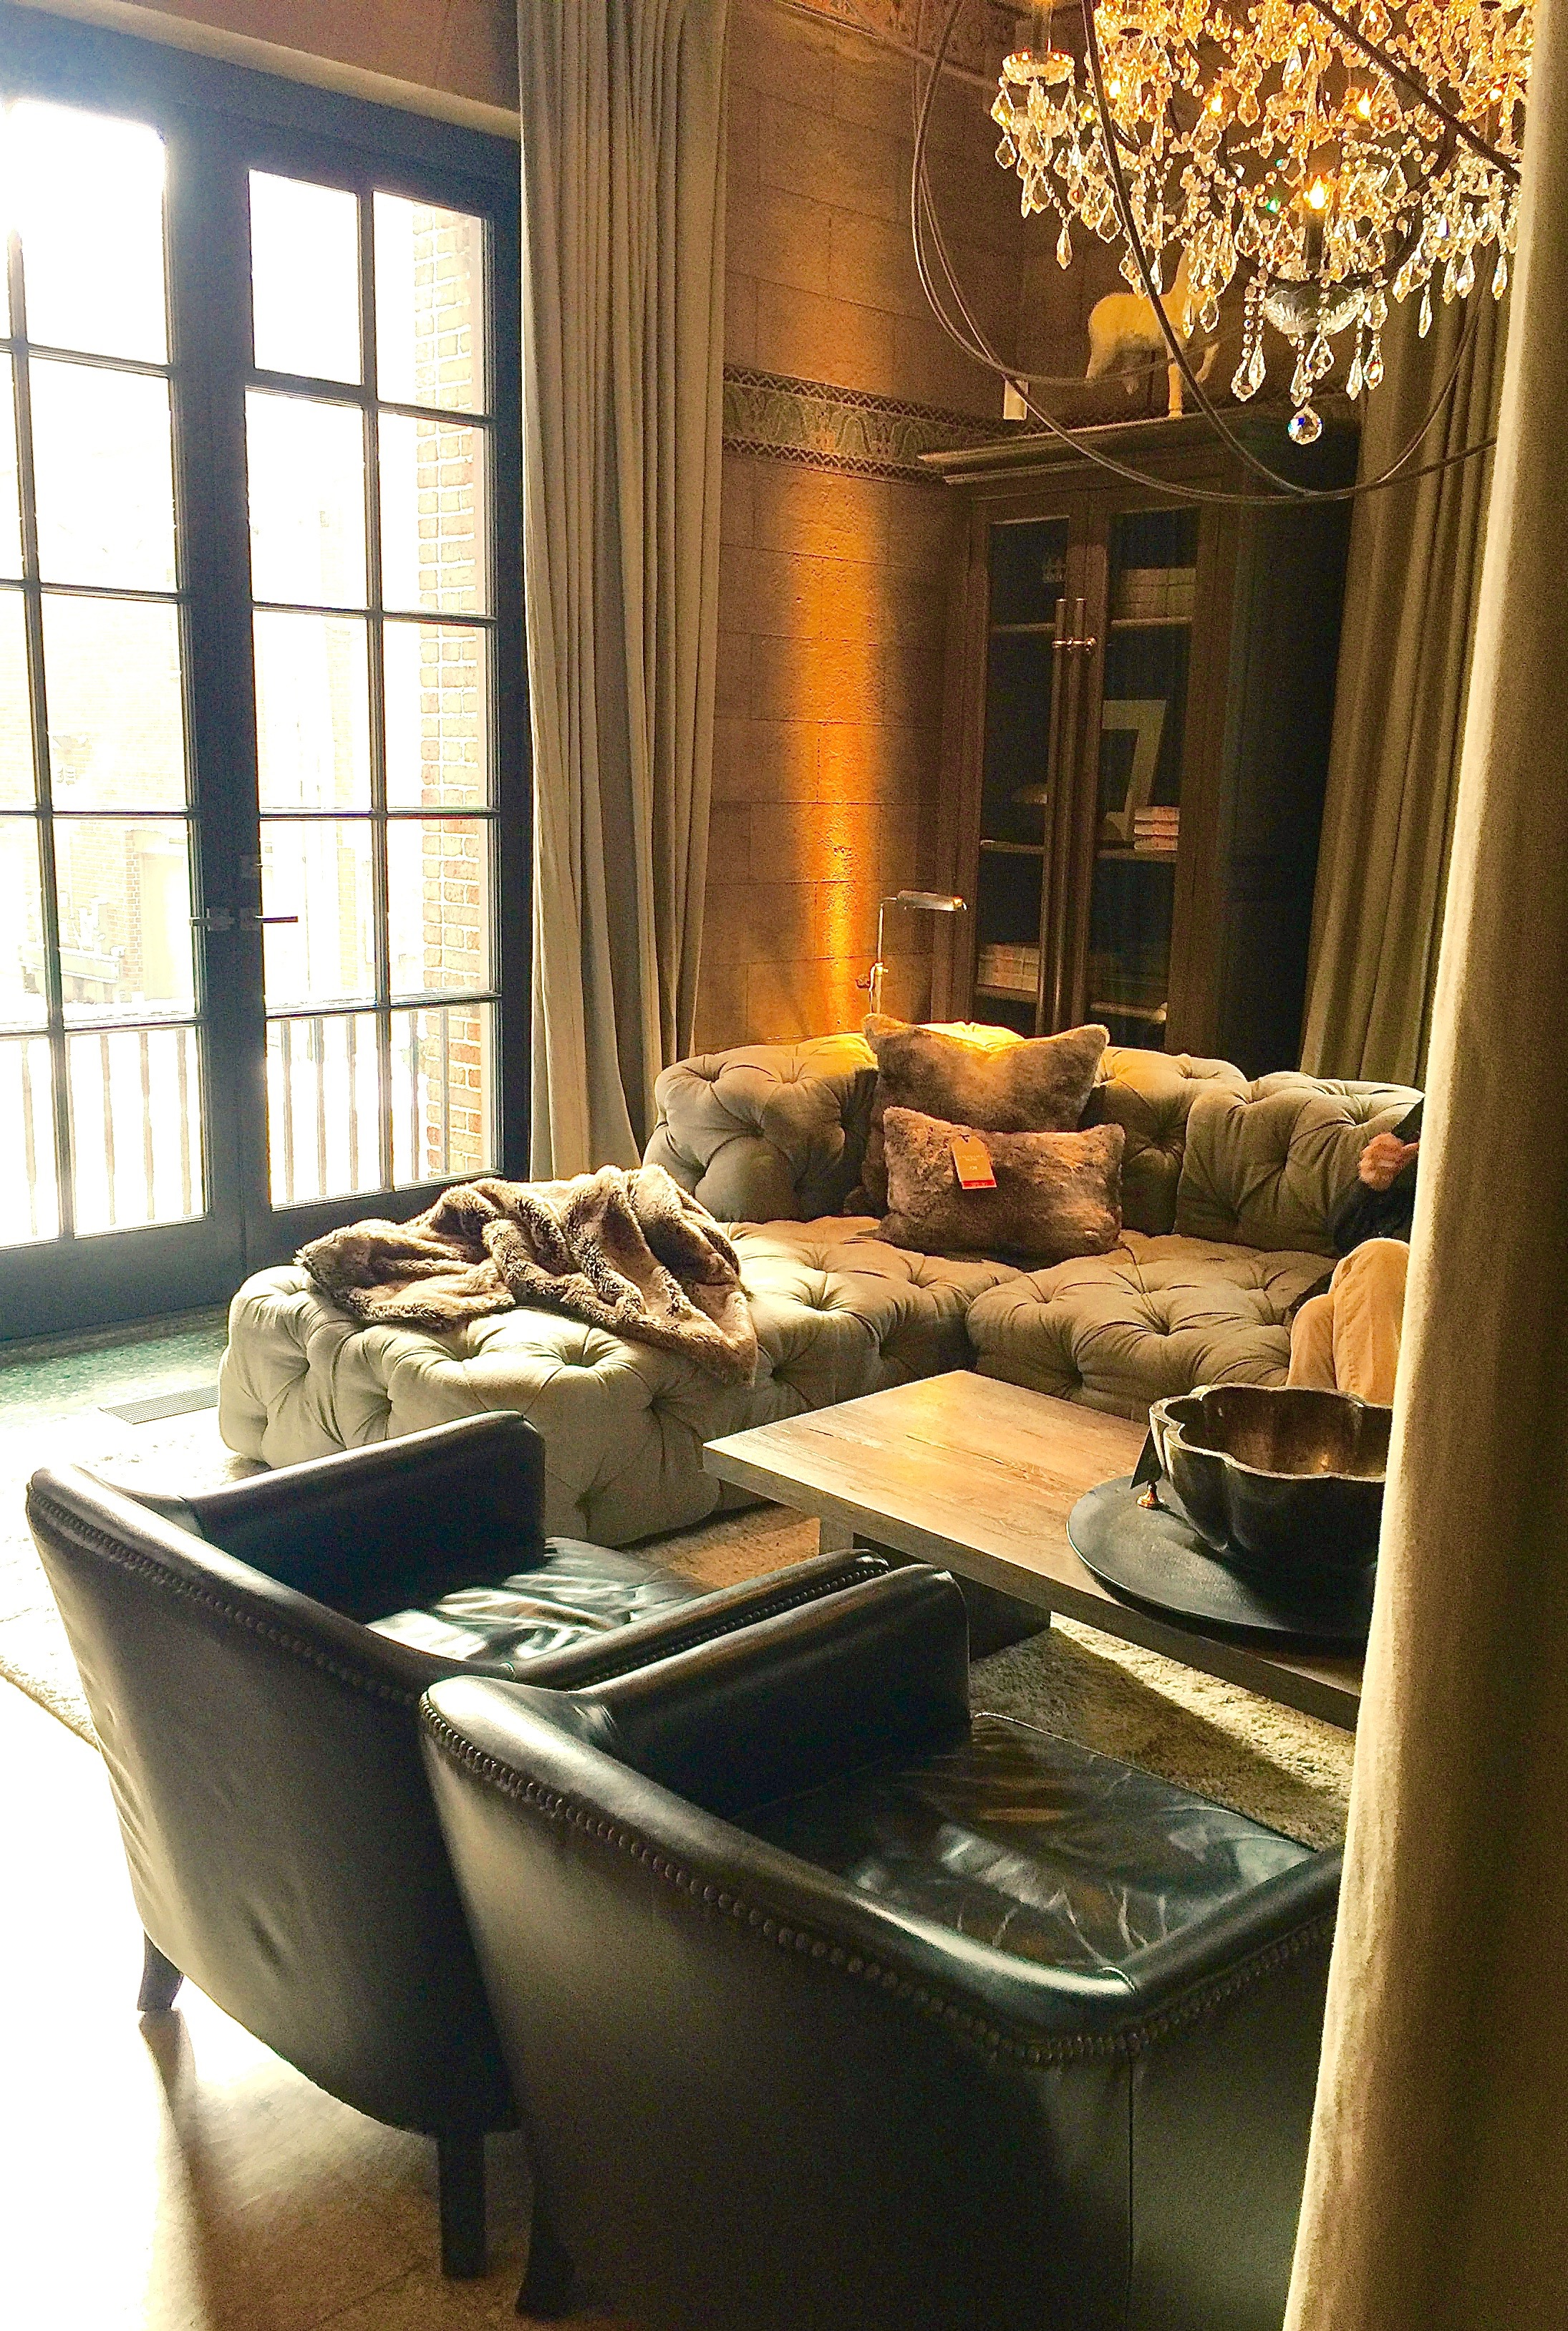 restoration hardware chicago, tufted sofa and leather side chairs, the phase three home.jpg